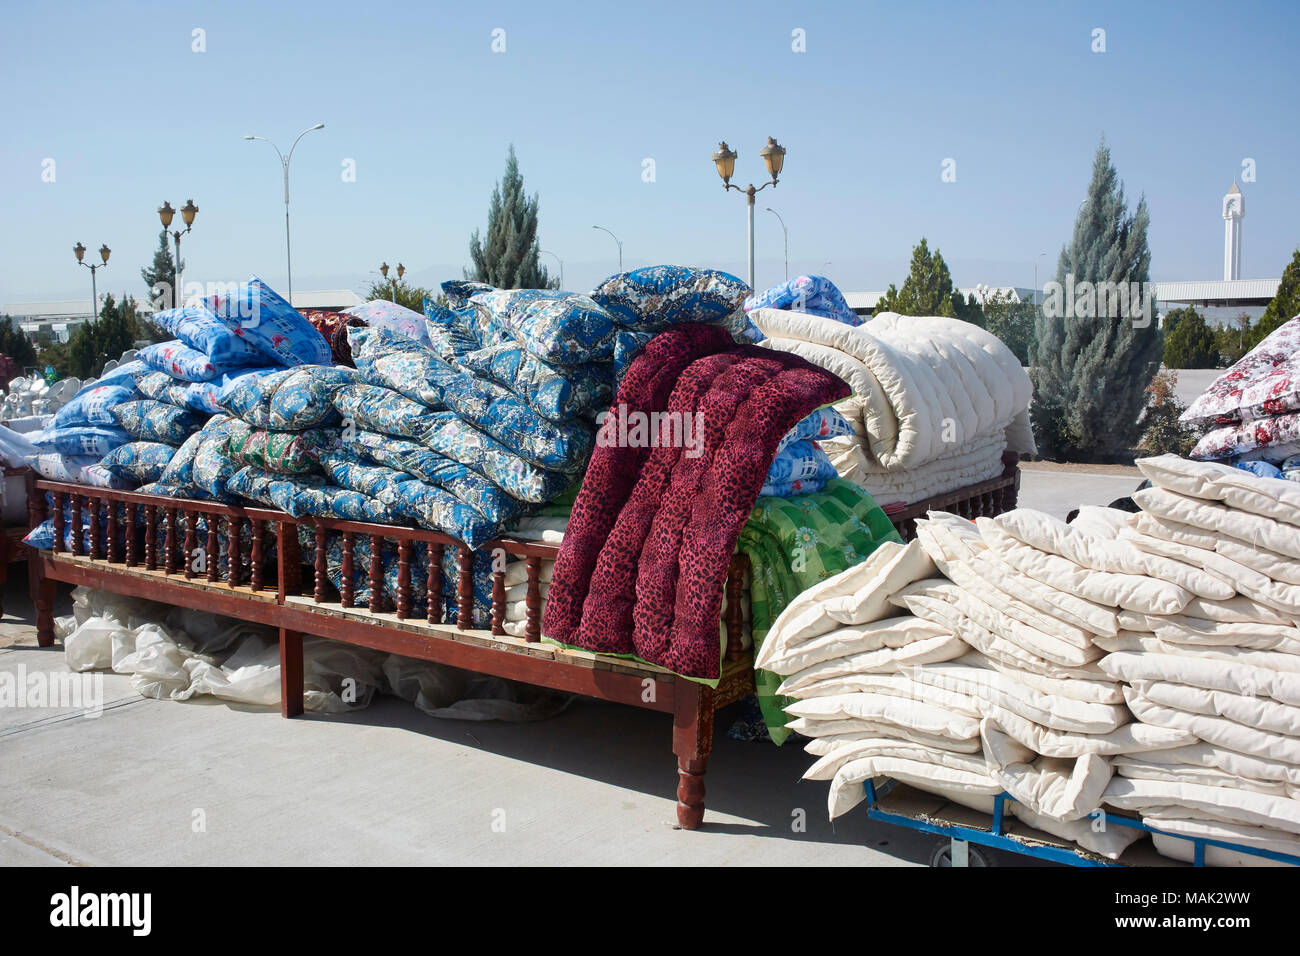 Cushions and mattresses for sale in market near Ashgabat, Turkmenistan - Stock Image